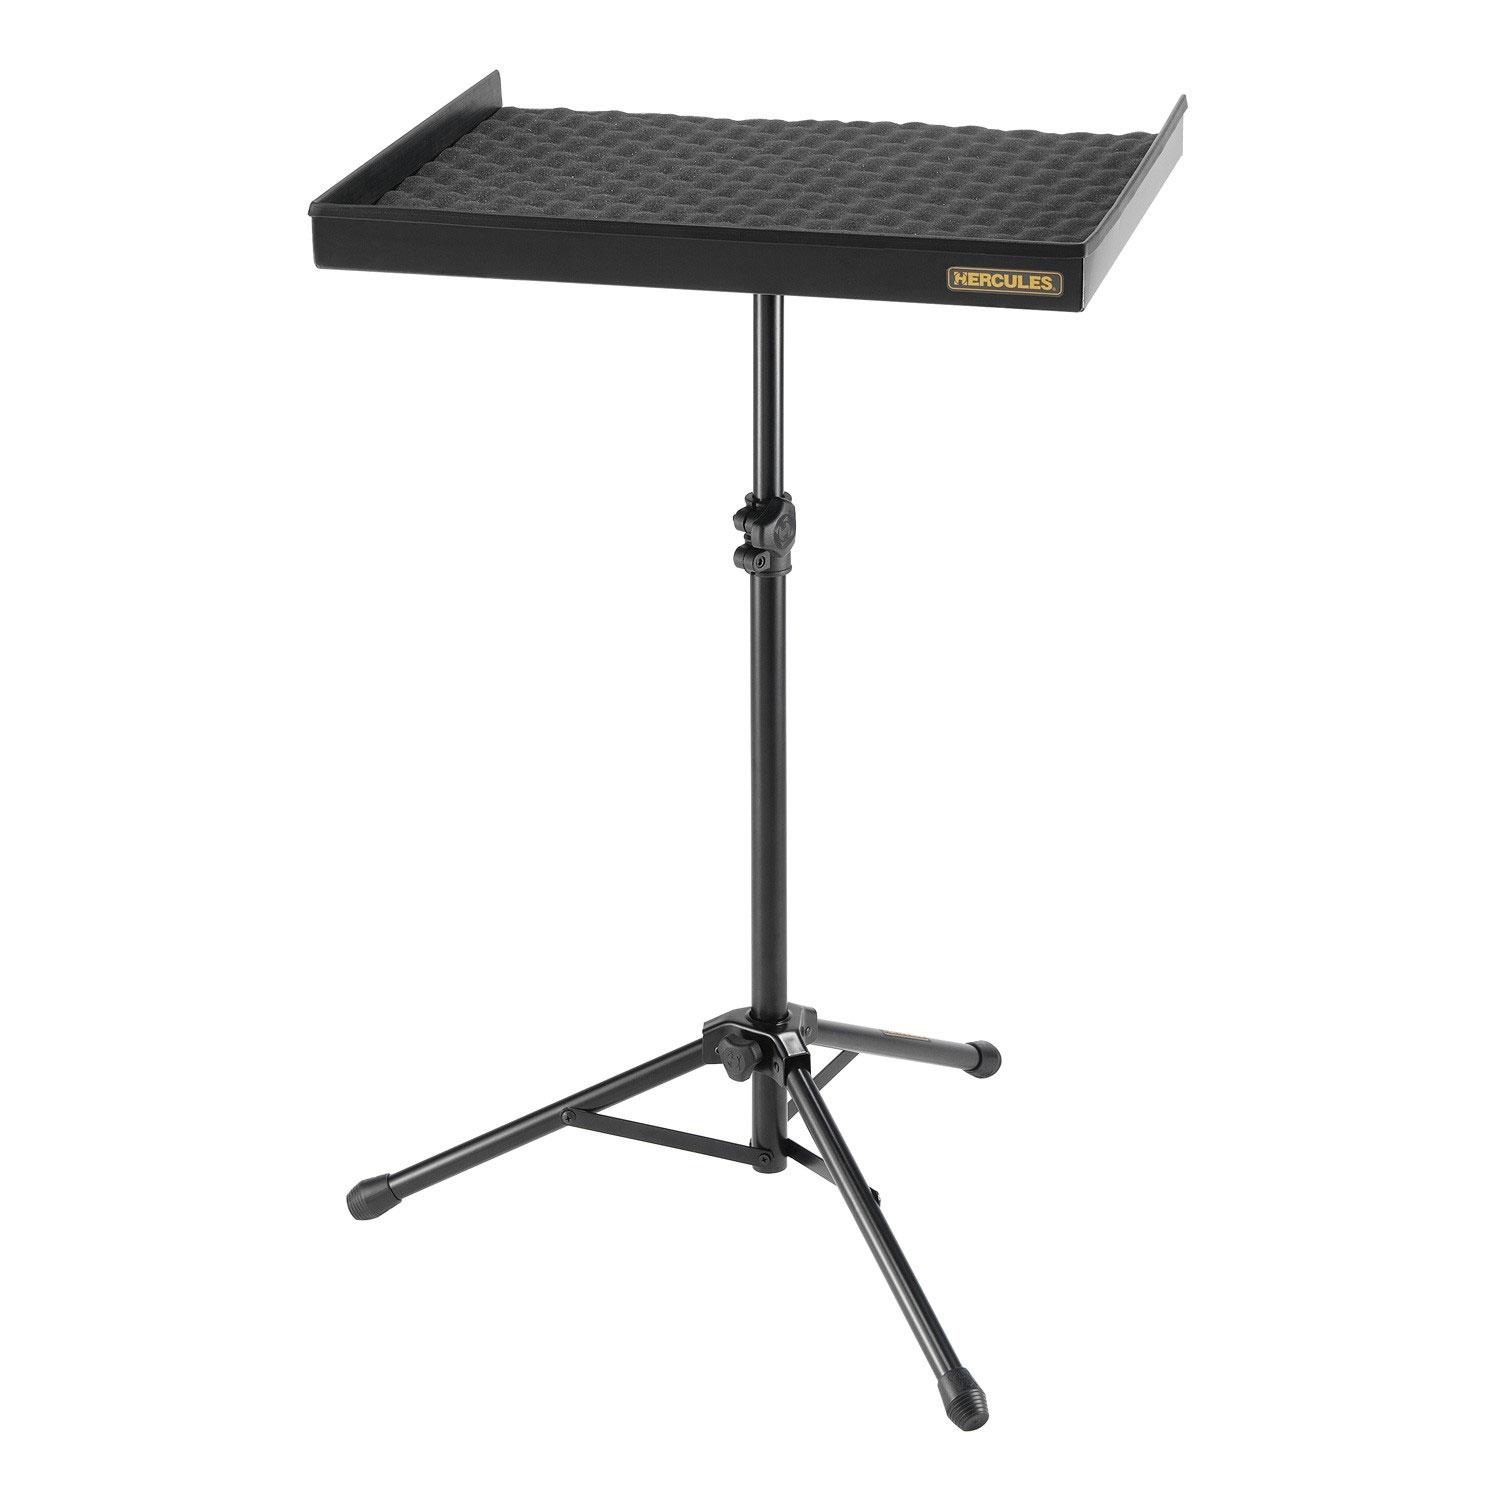 Hercules Trap Table Stand